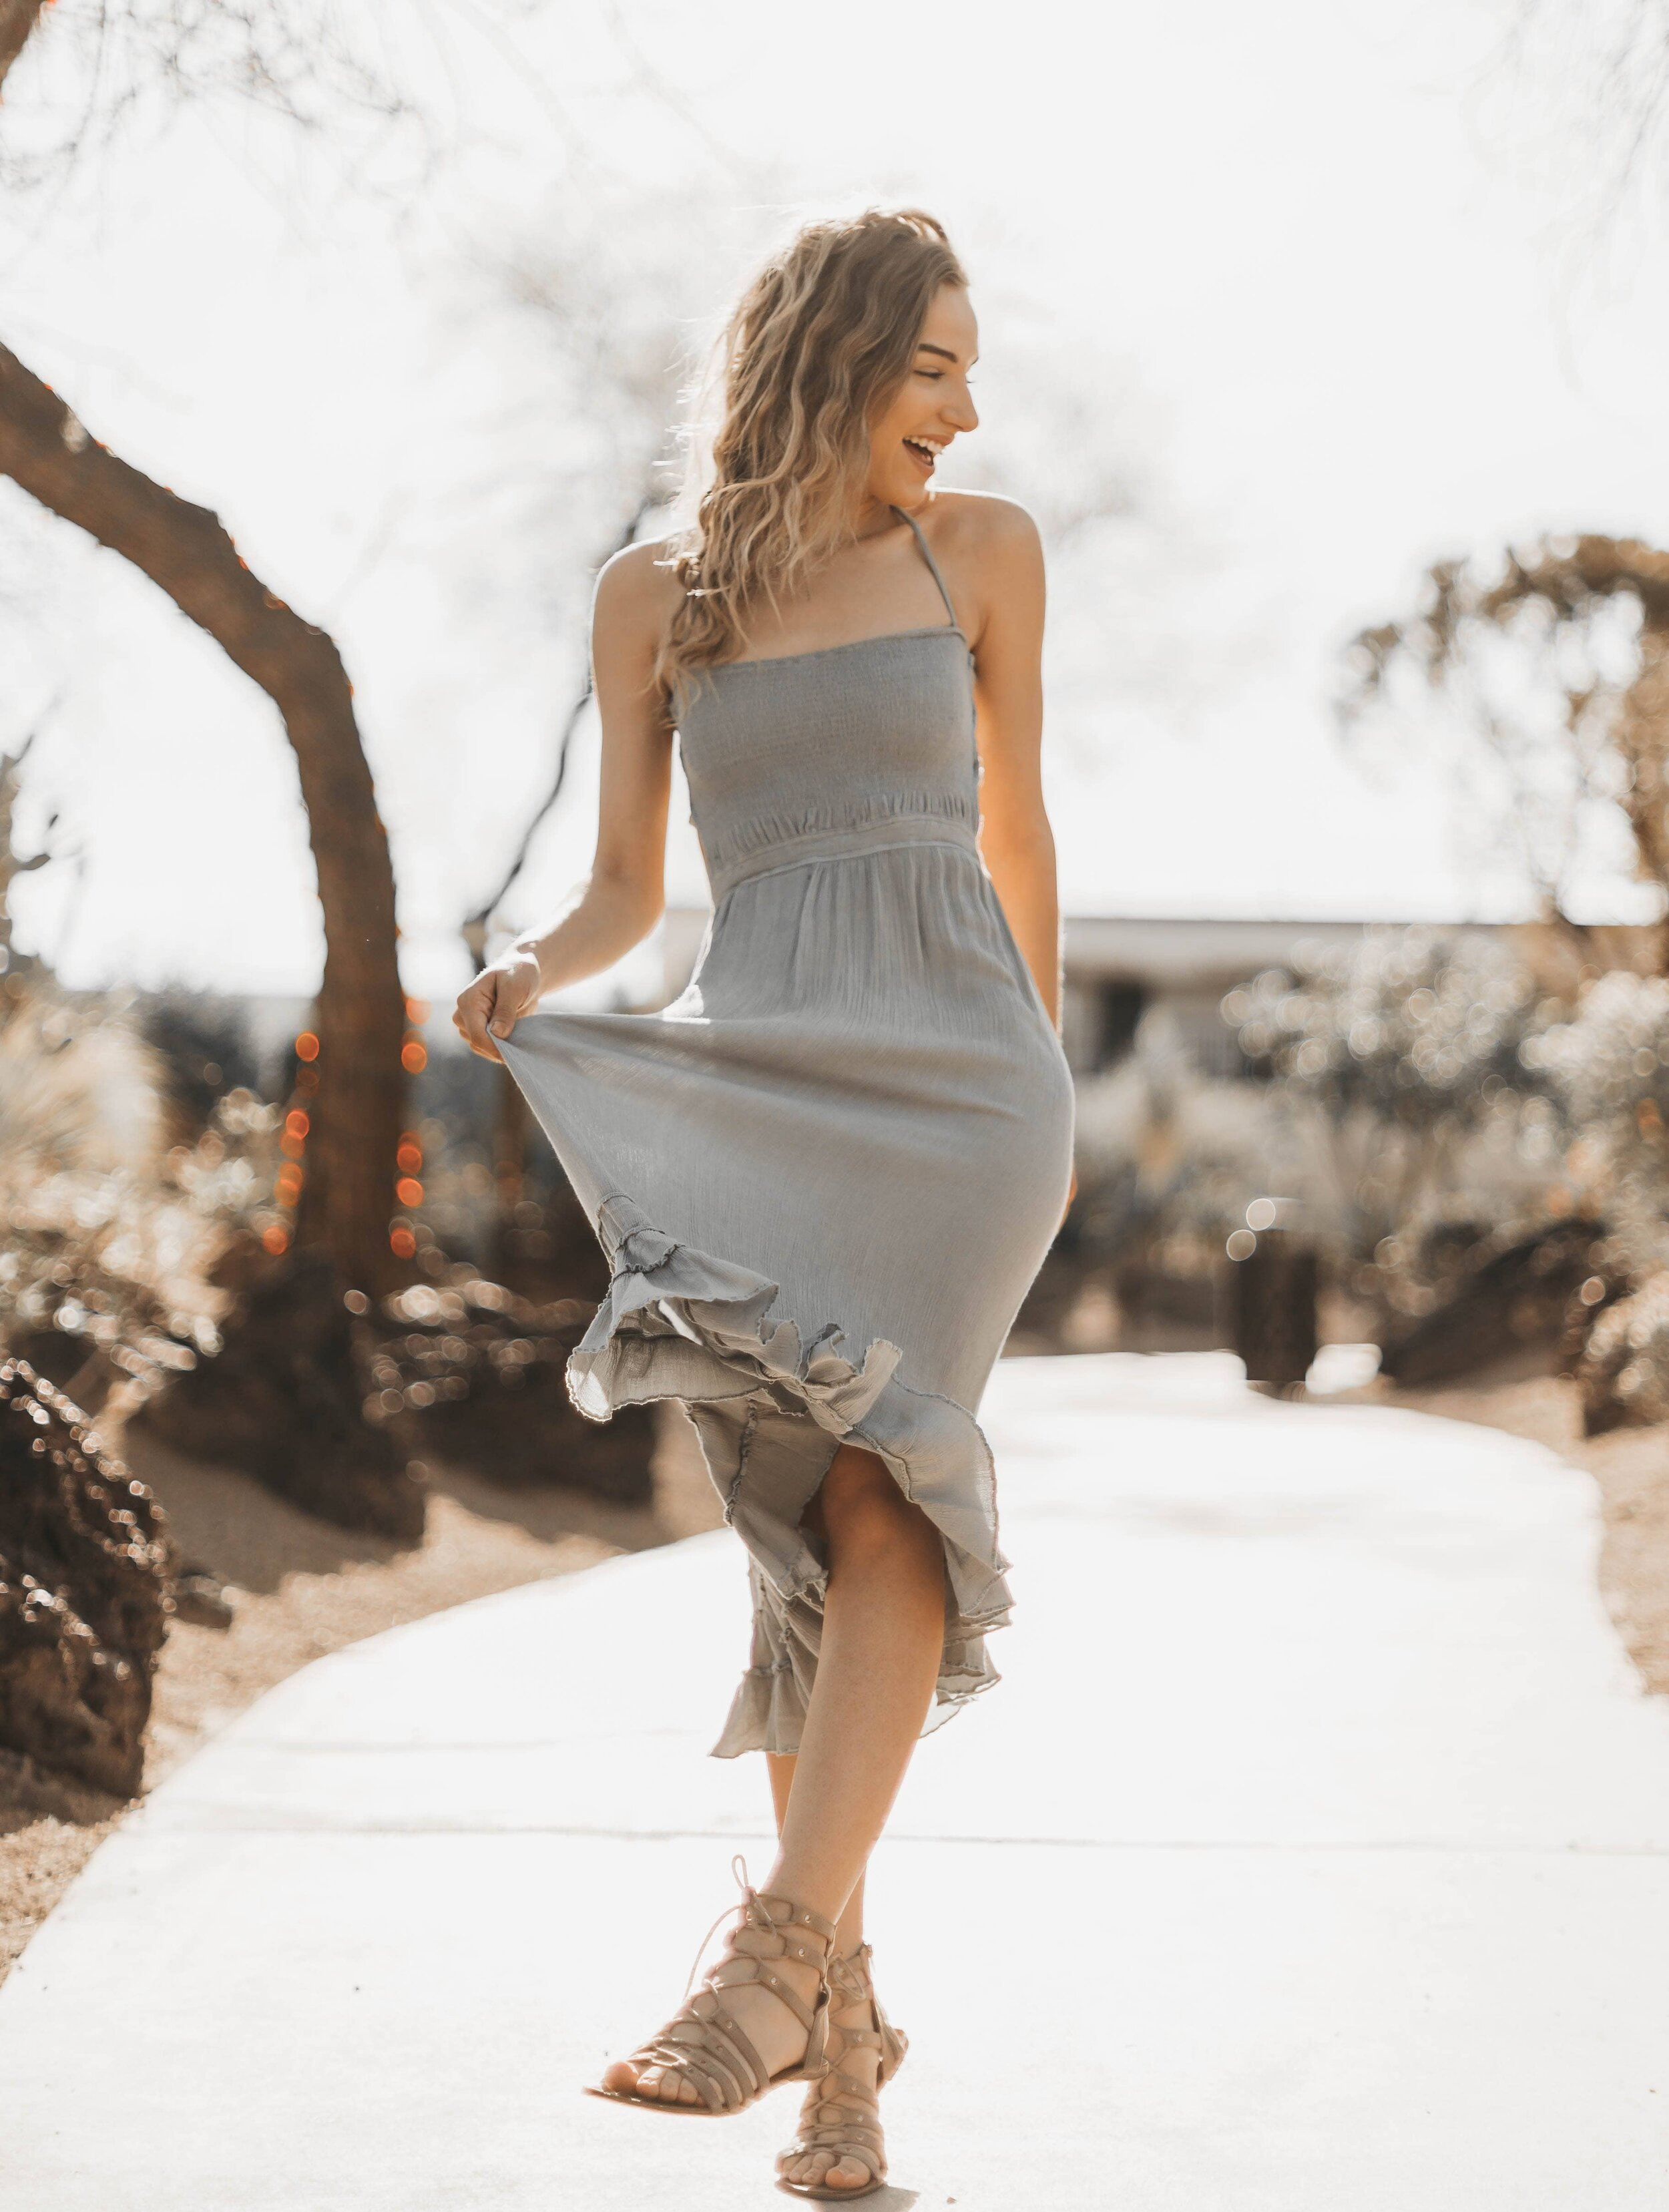 Buying outfits from online clothing boutique was easy, woman in tan sundress happy she found dresses online.